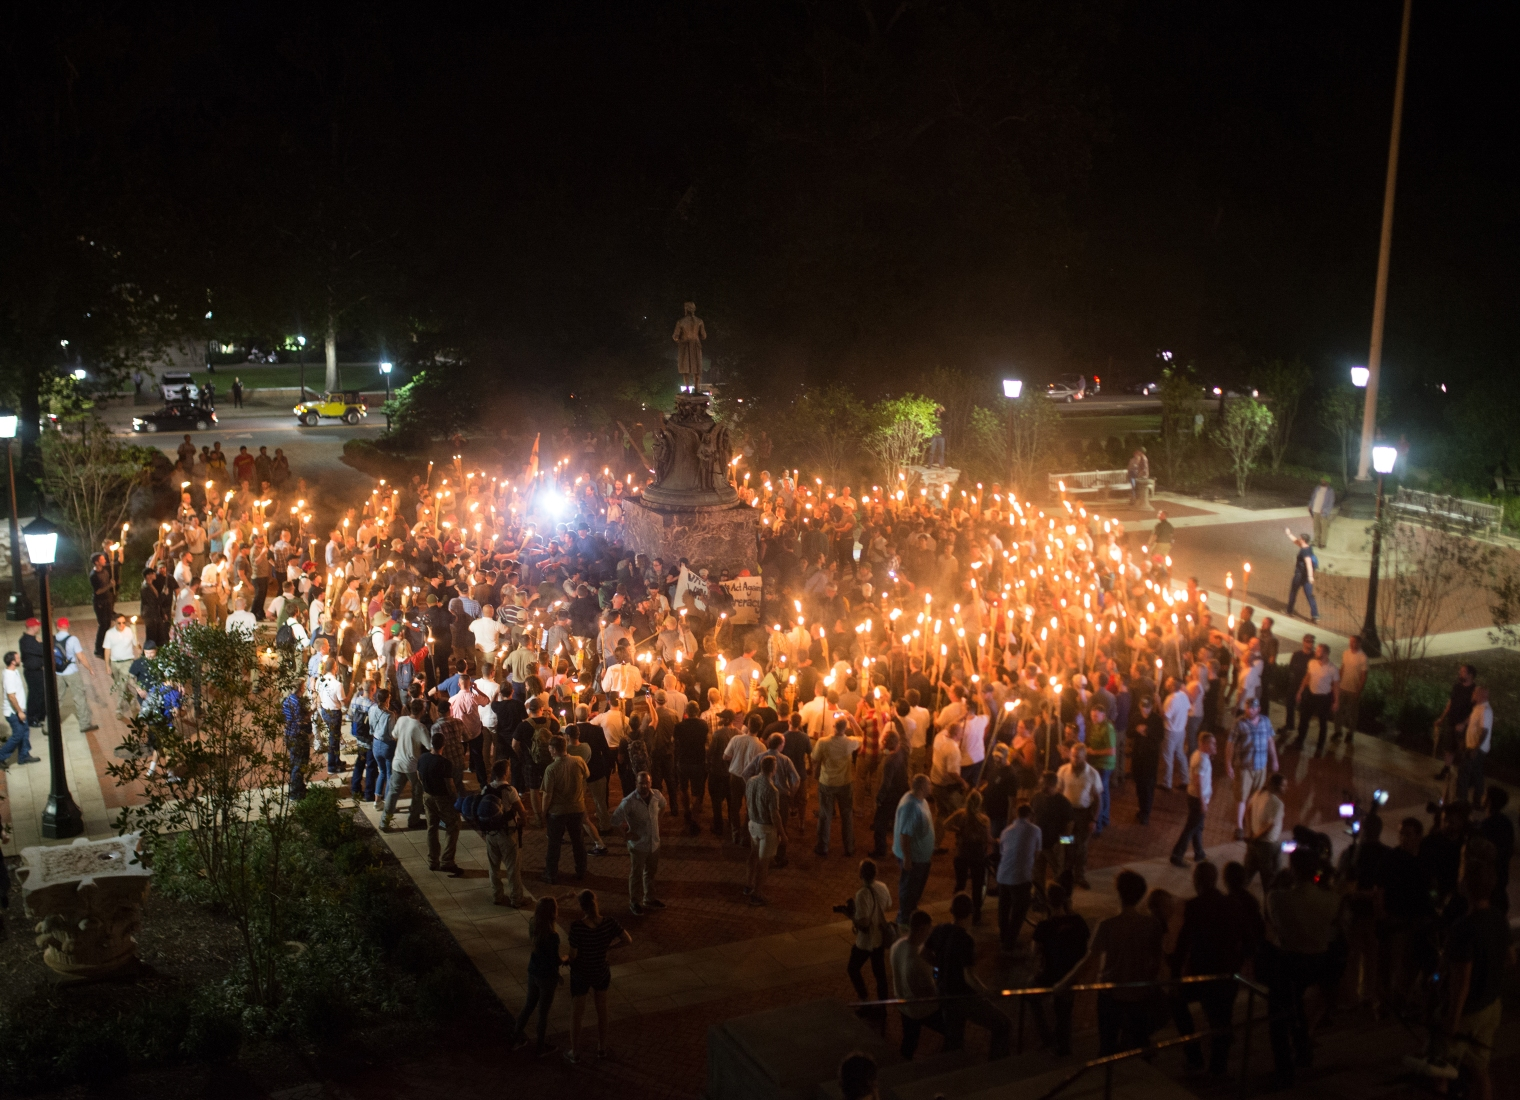 White nationalists encircle counter-protestors at the base of a statue of Thomas Jefferson after marching through the University of Virginia campus with torches in Charlottesville, Va., on Aug. 11, 2017.